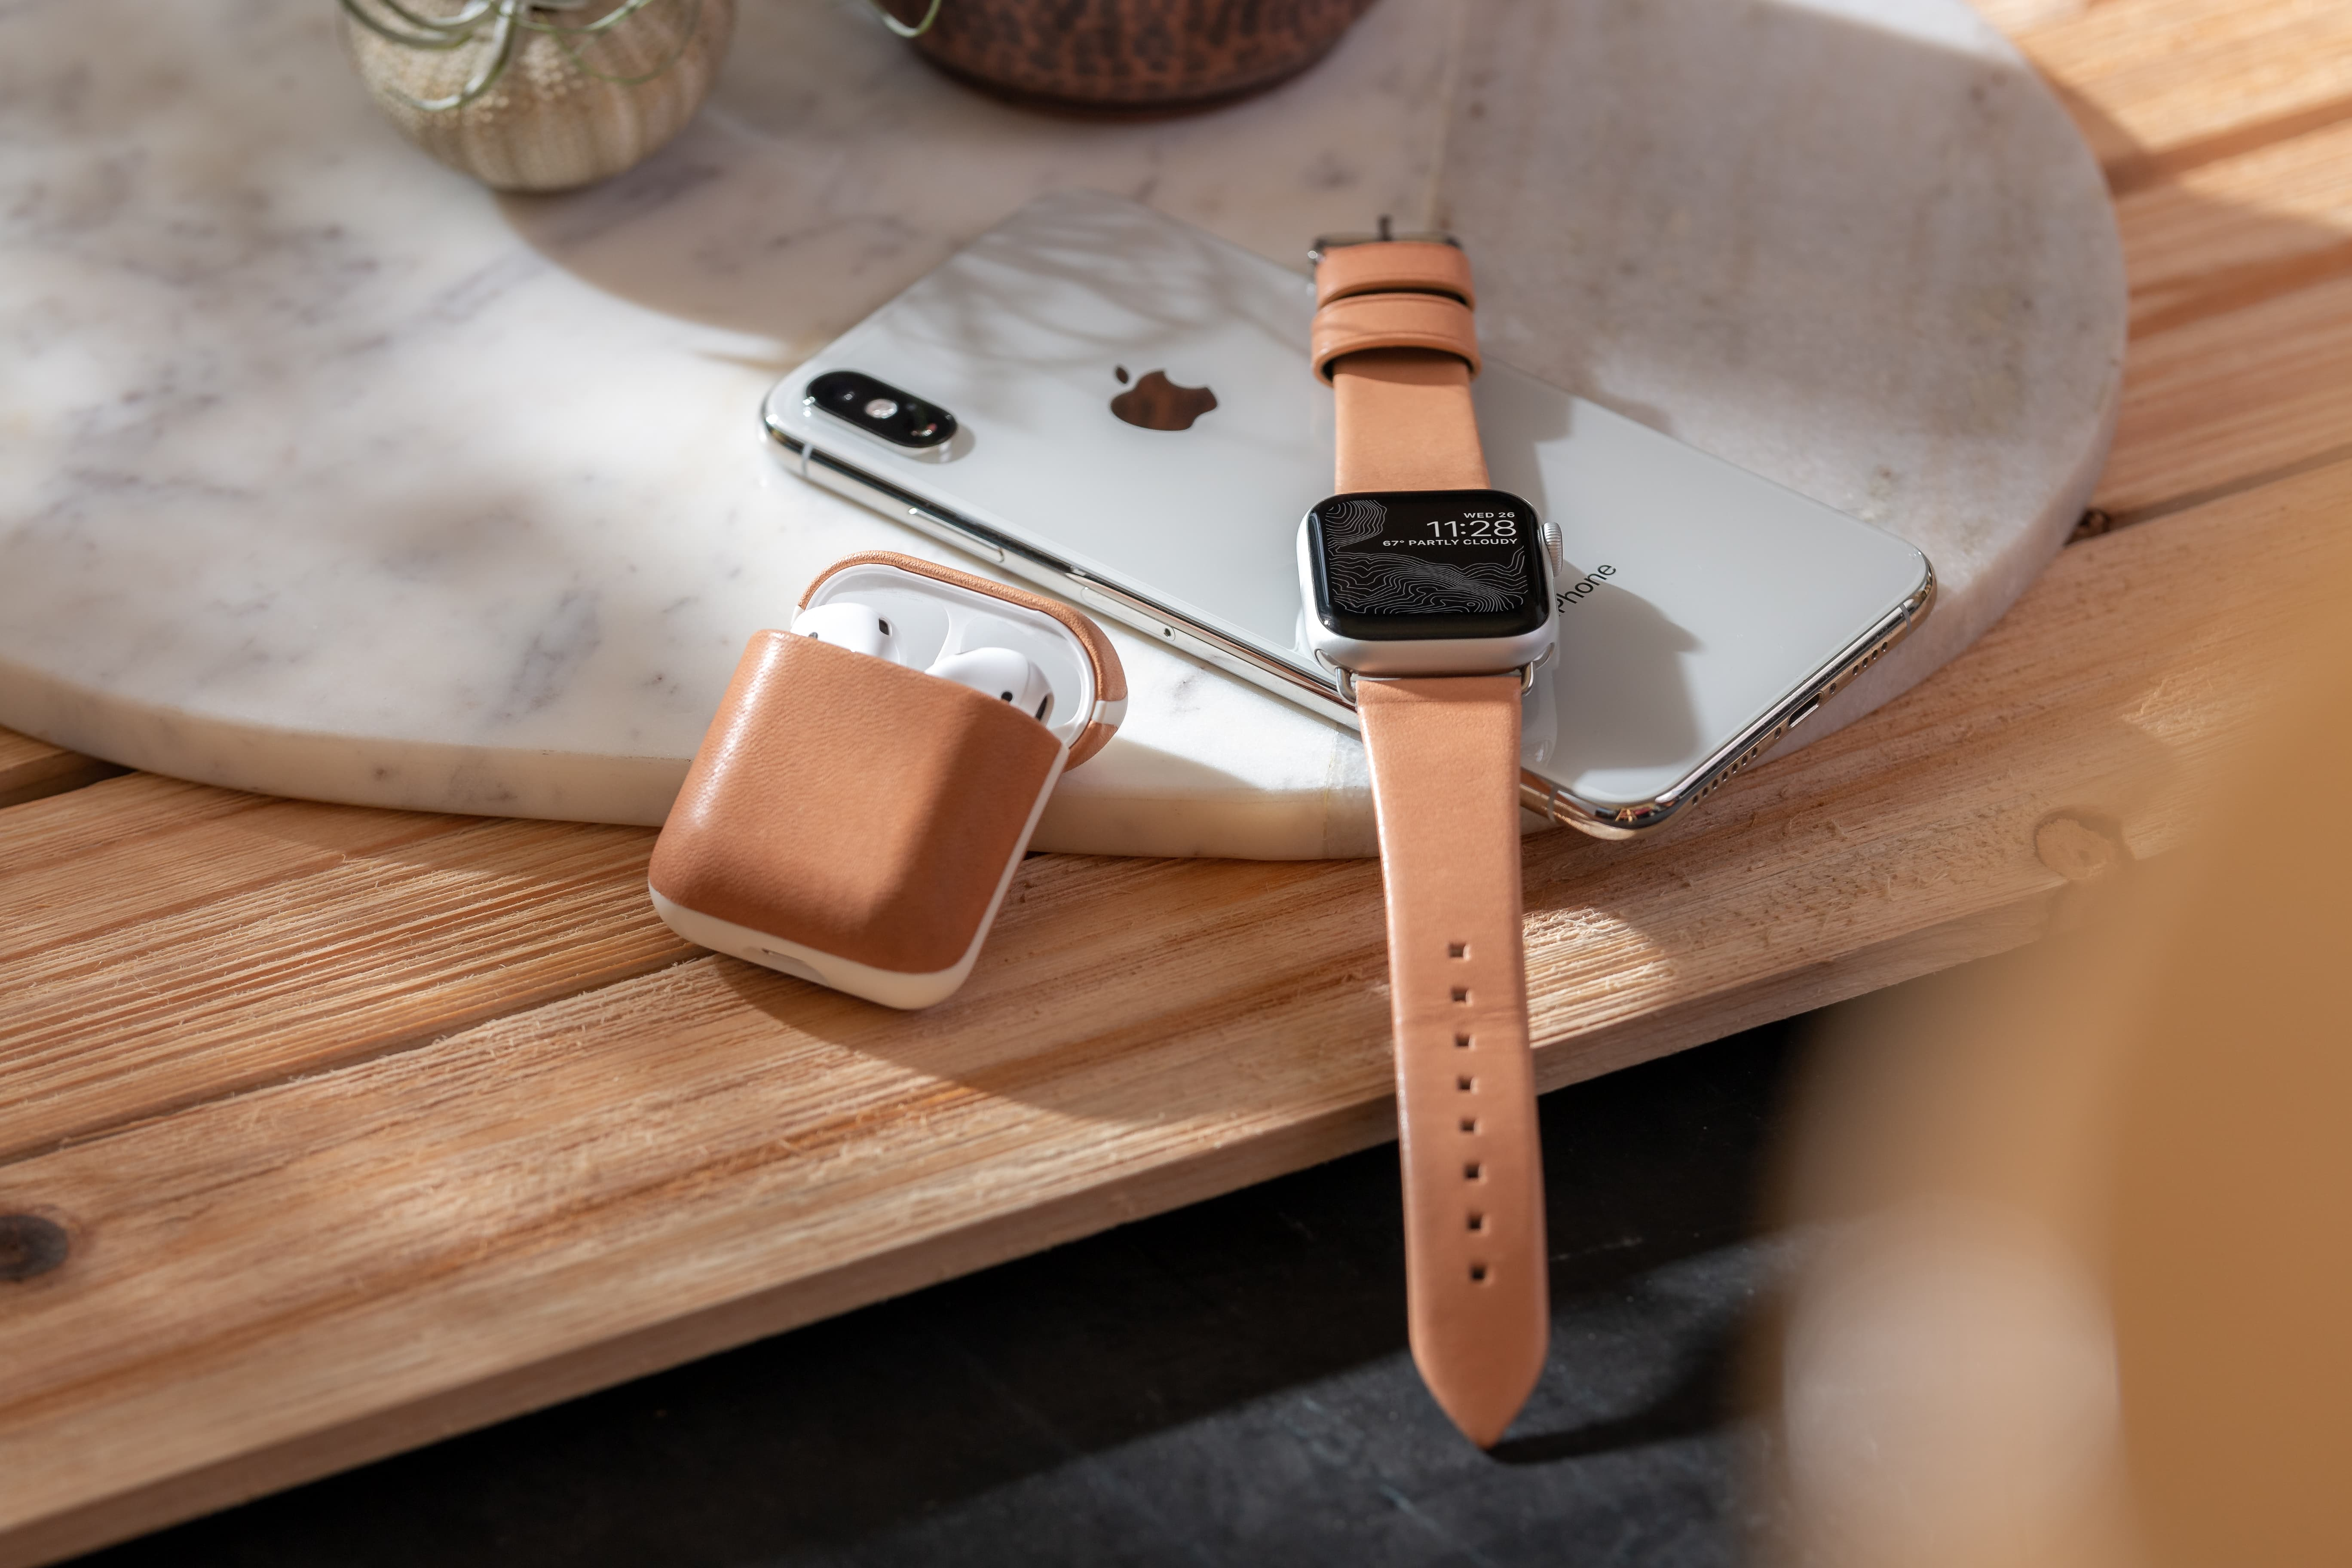 Nomad launches new Natural leather accessory line for Apple Watch and AirPods